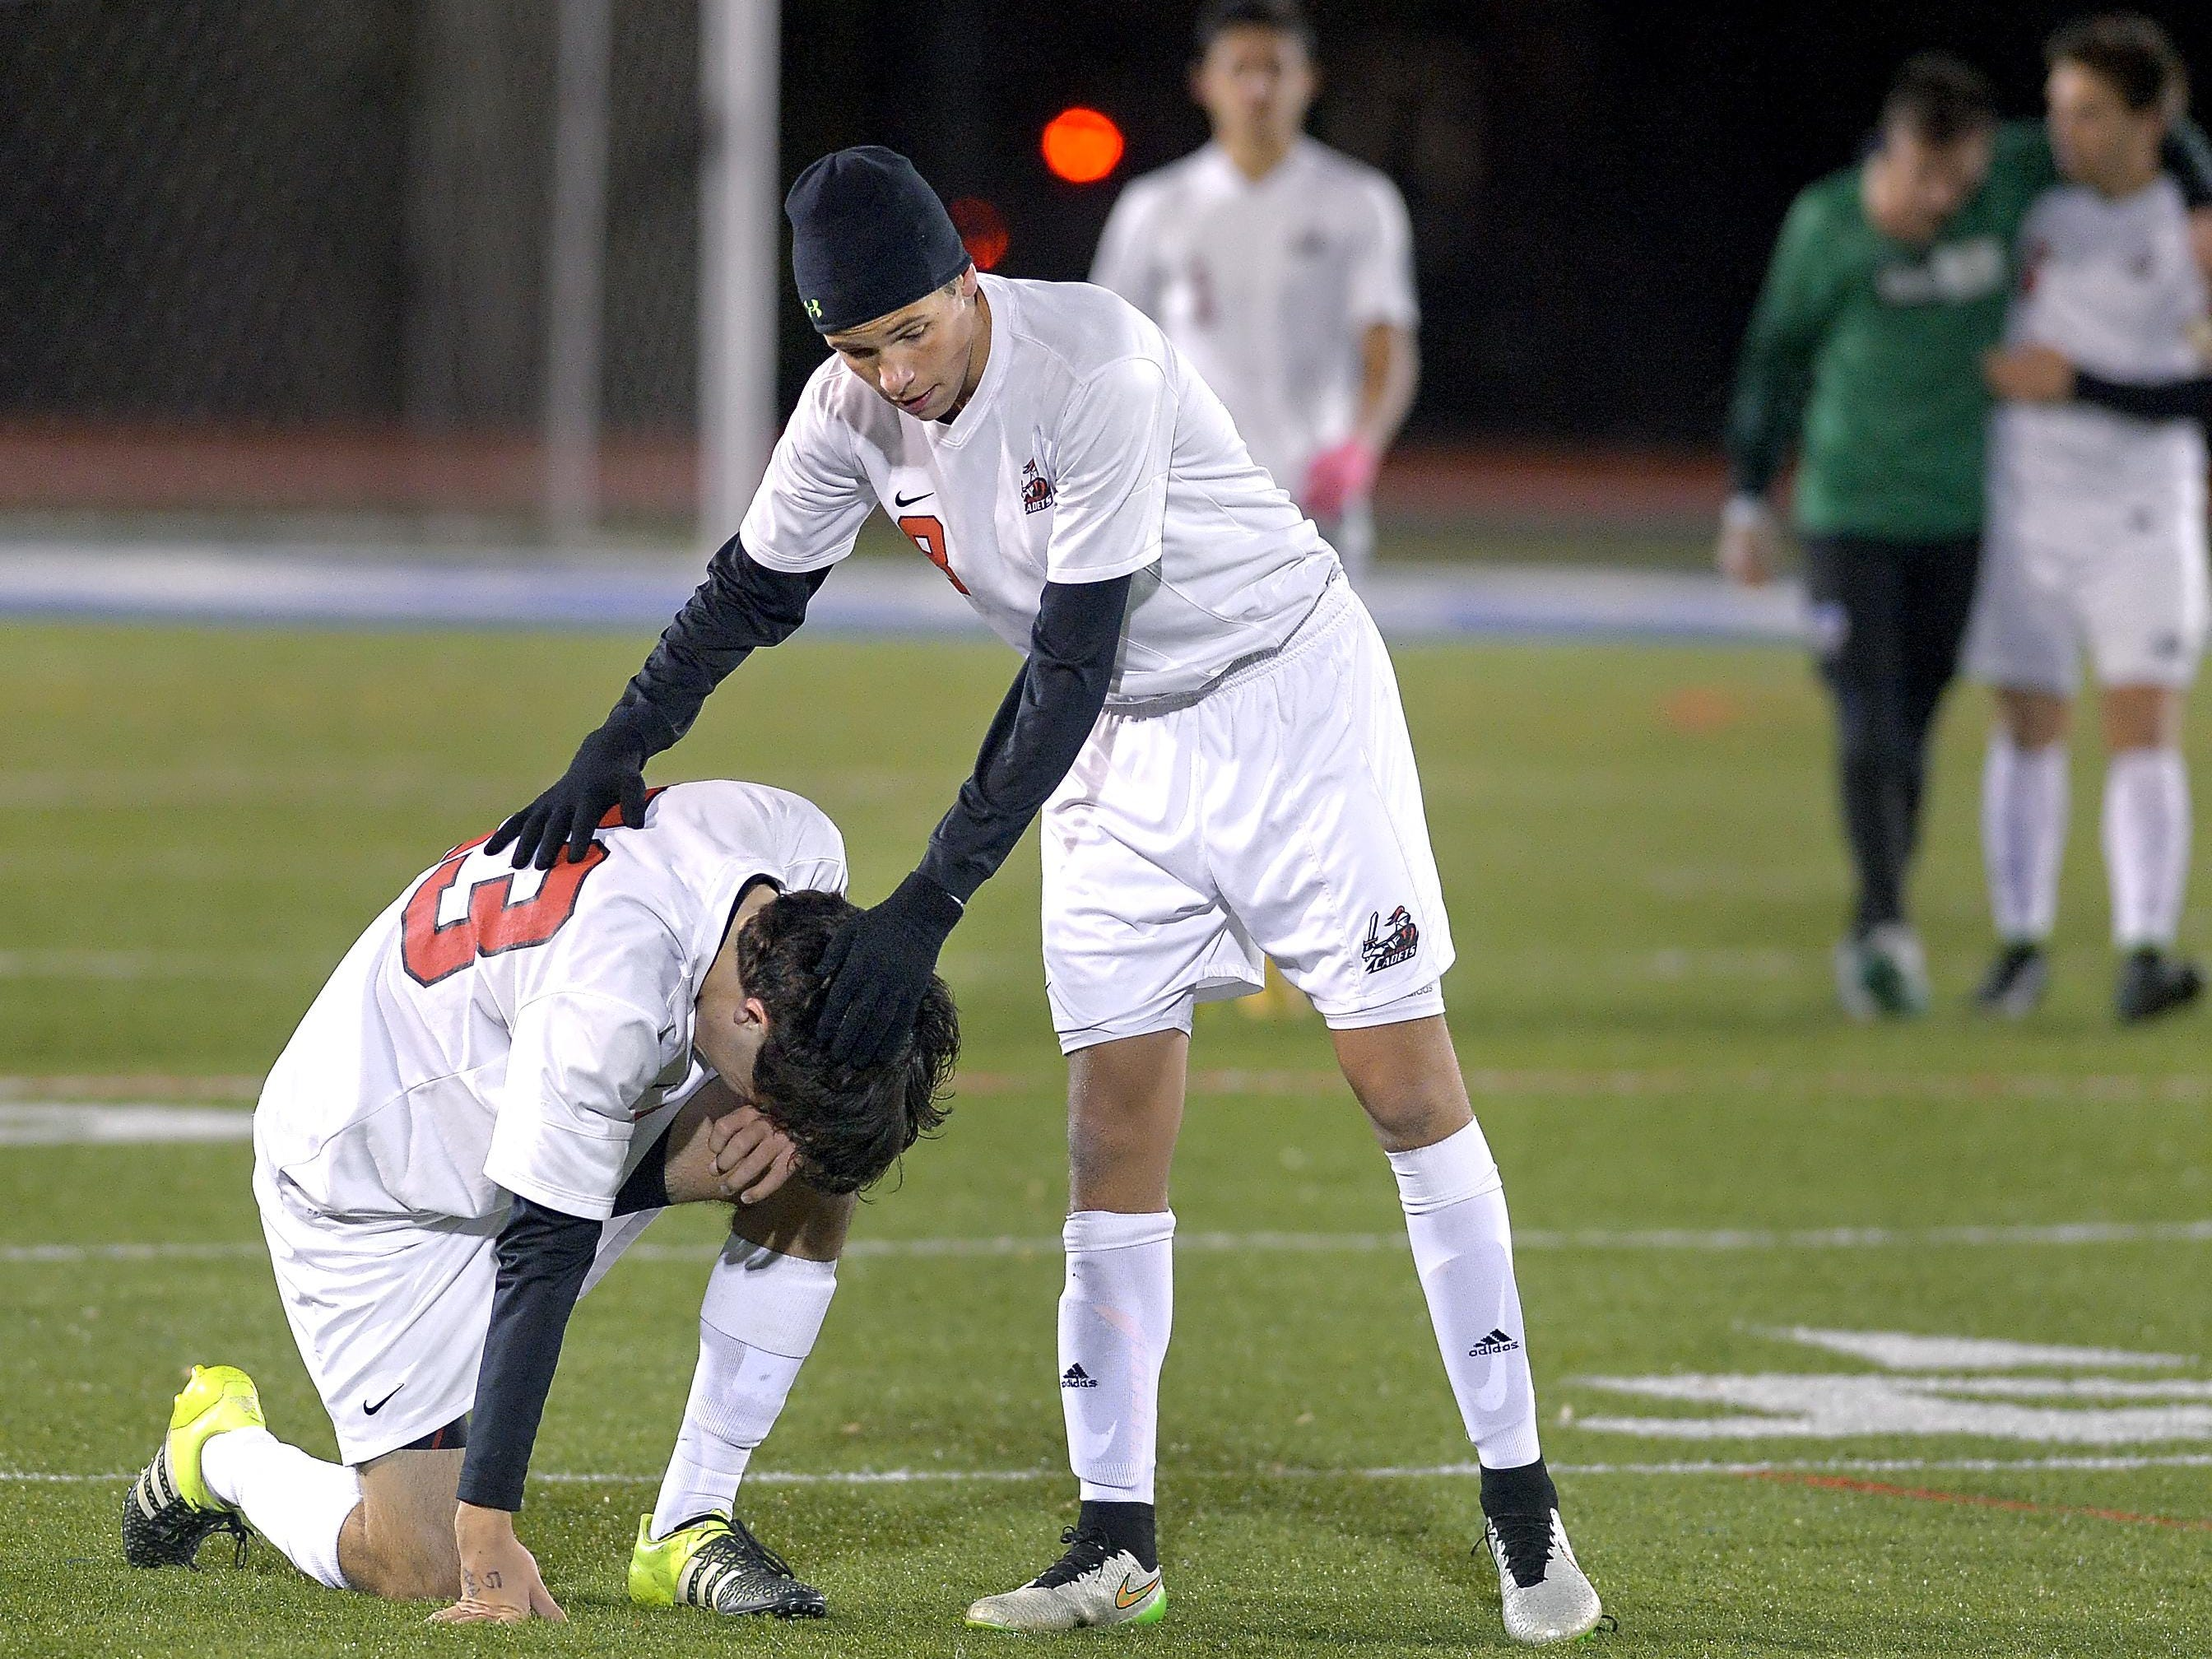 Hilton's Brady Farrell, center, consoles Tyler Nettnin following their loss in the NYSPHSAA Boys Soccer Championships Class AA semifinal played at Middletown High School on Saturday, November 14, 2015. Hilton's season ended with a 7-3 loss to Walt Whitman-XI.